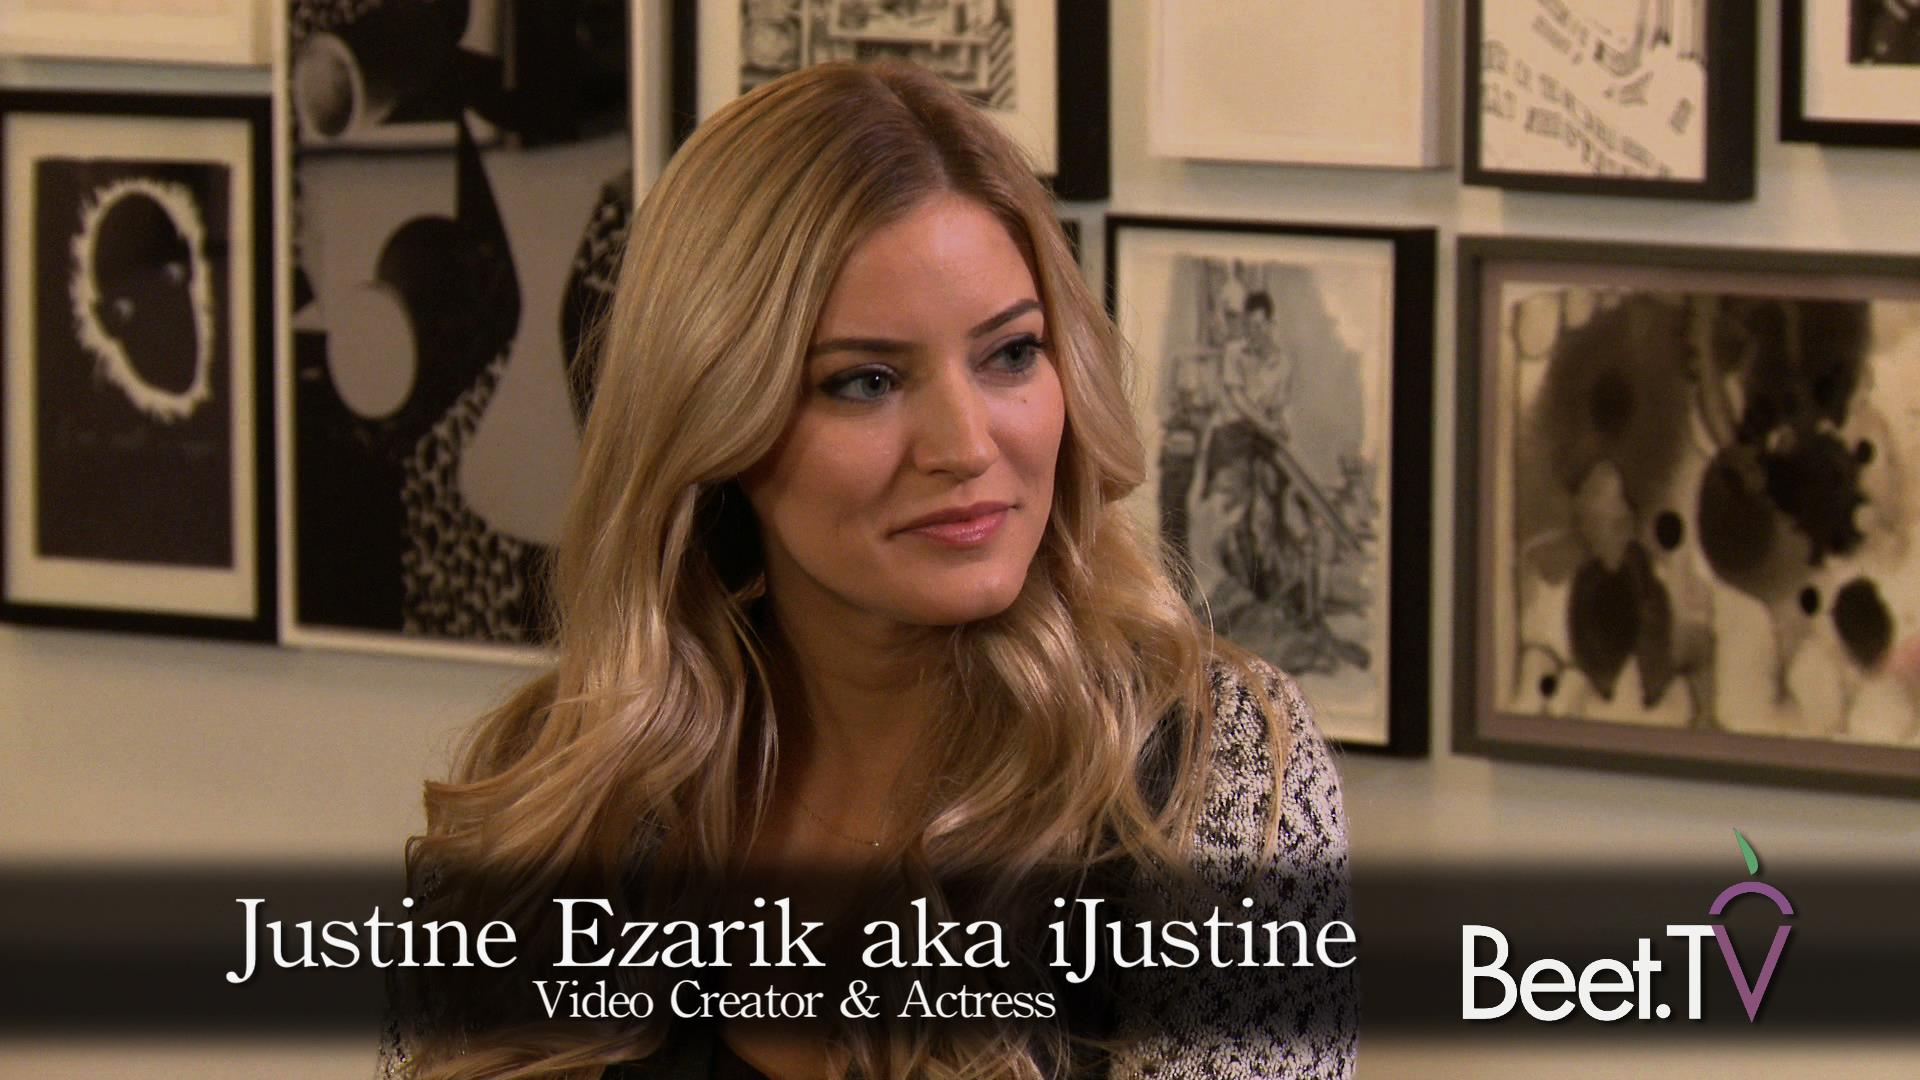 Web Star IJustine on Branded Video and Her Own Pizza Hut Pizza